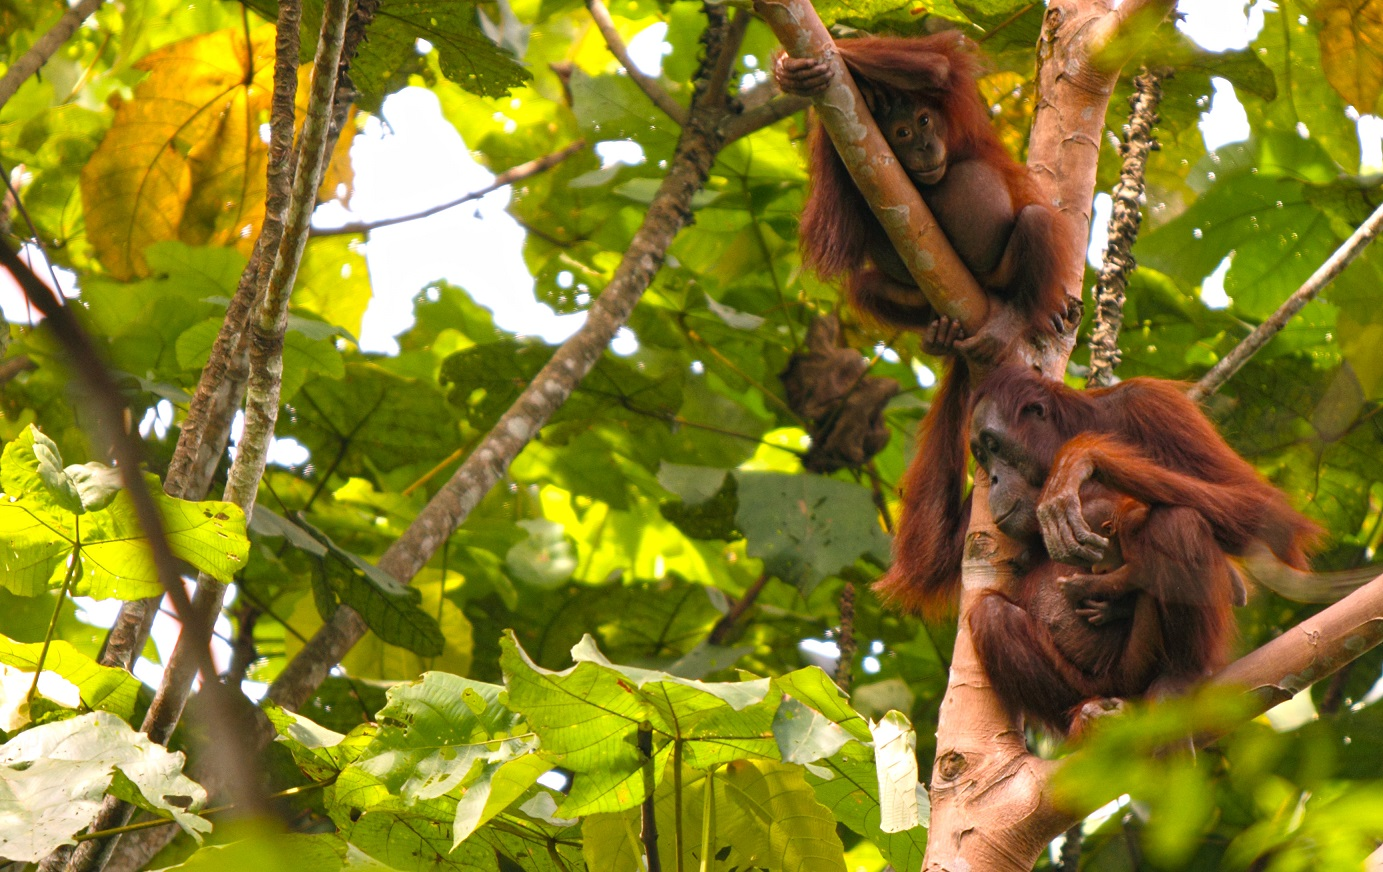 Putri, Pur and a new baby are an orangutan family that the researchers at OKP follow